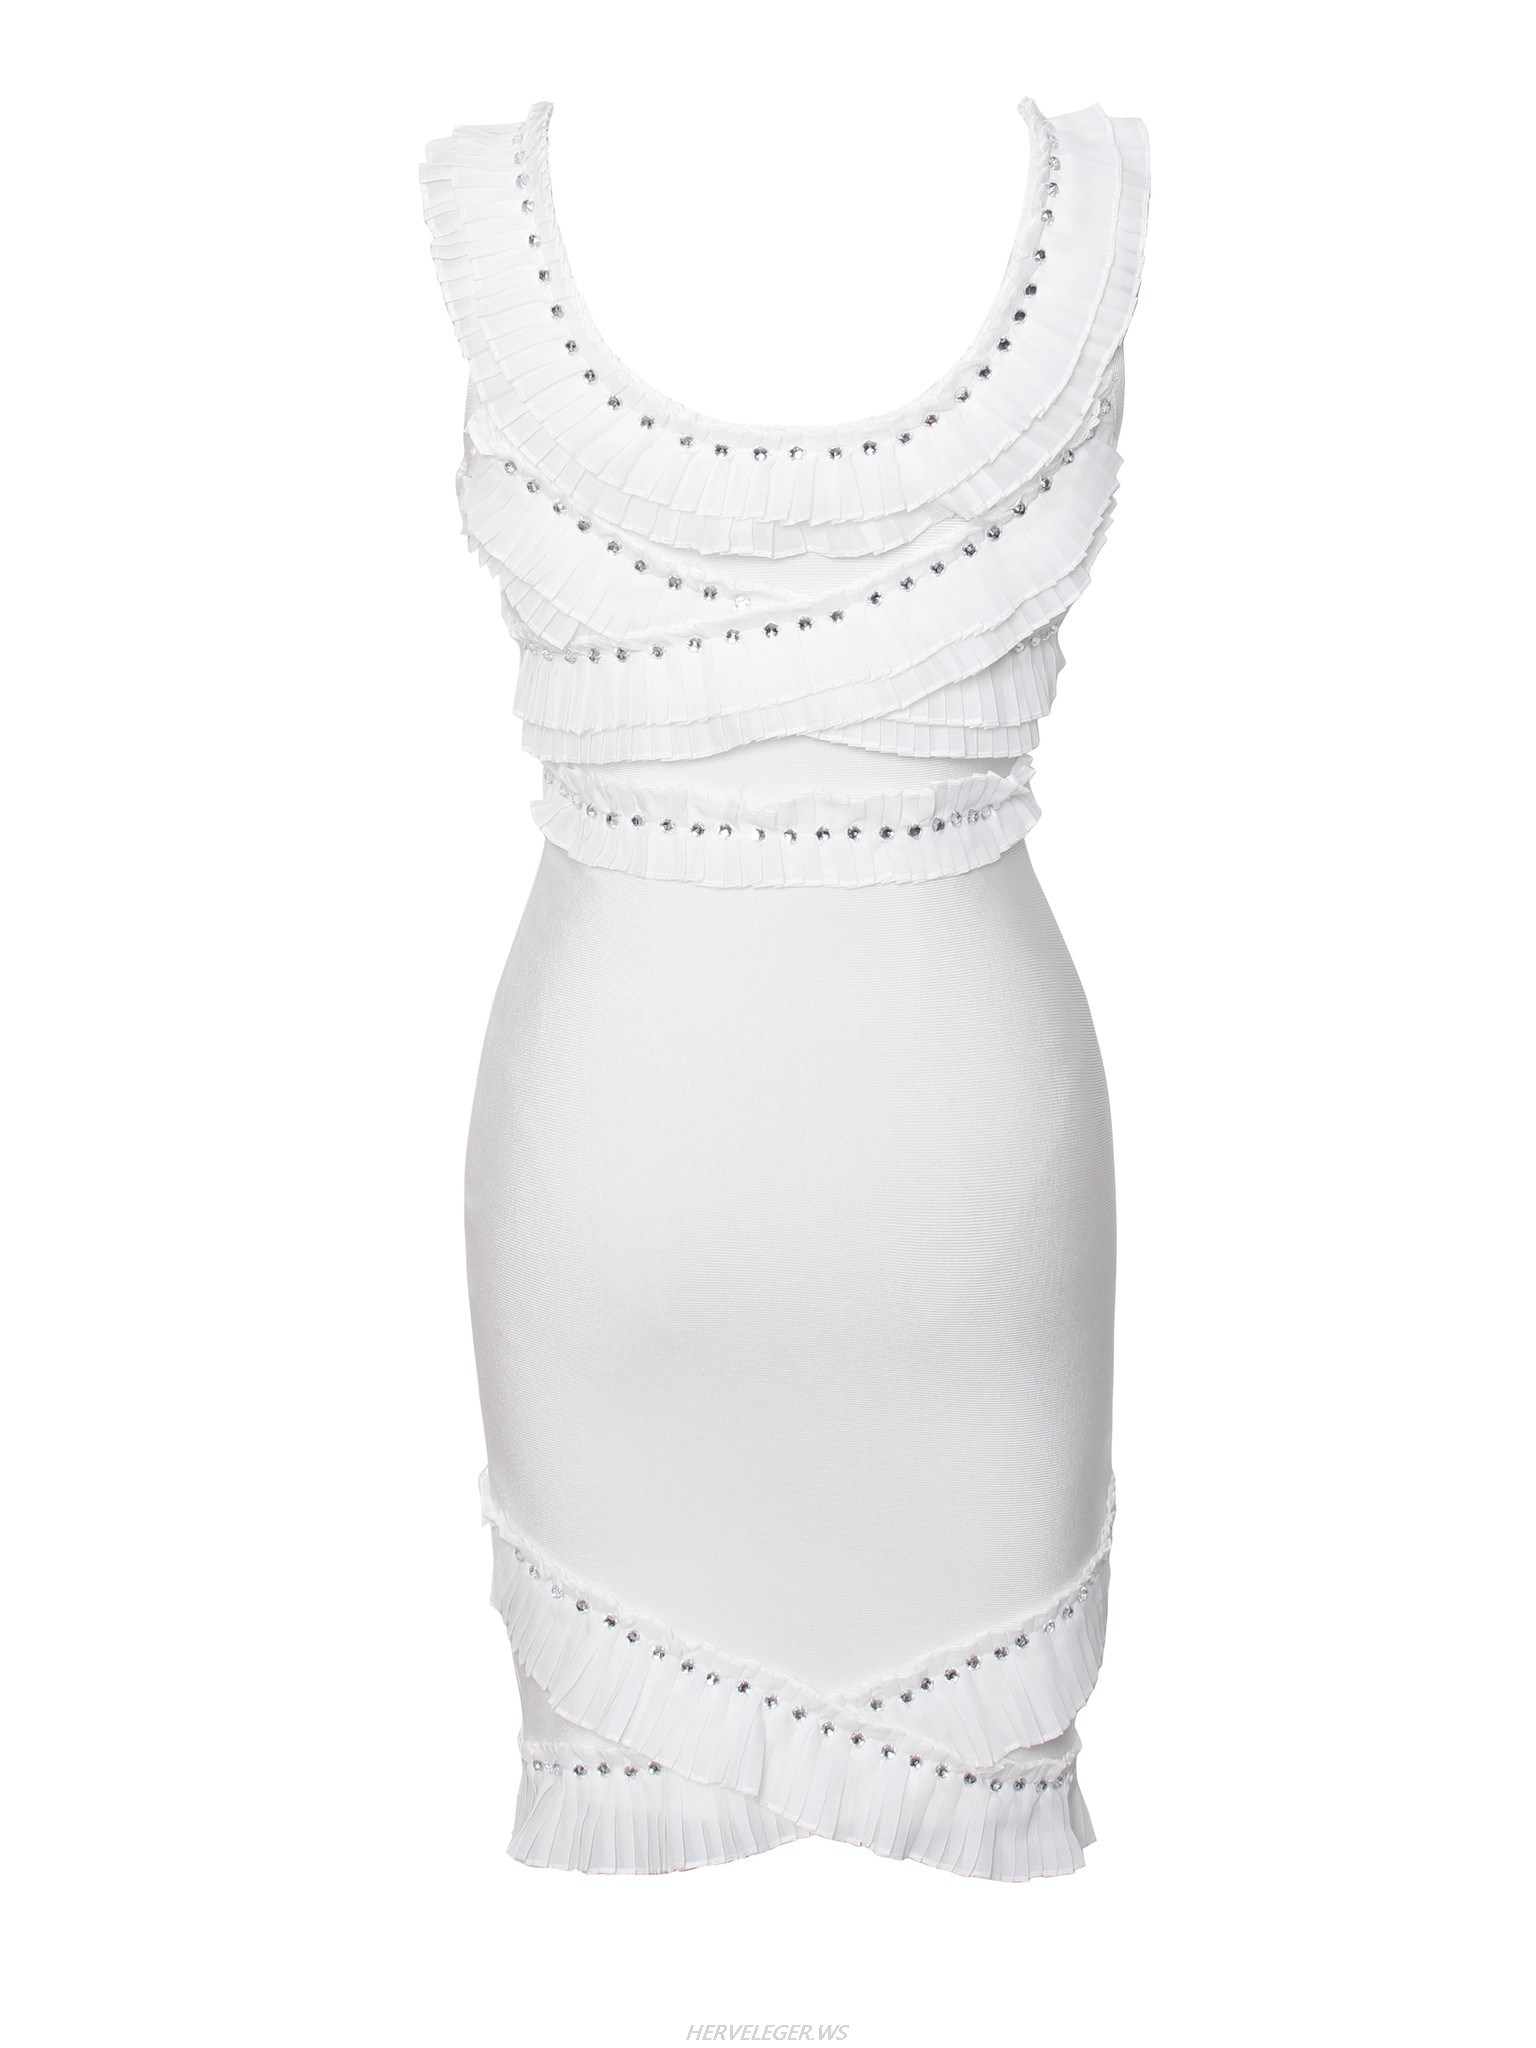 Herve Leger White Ruffle And Stud Dress